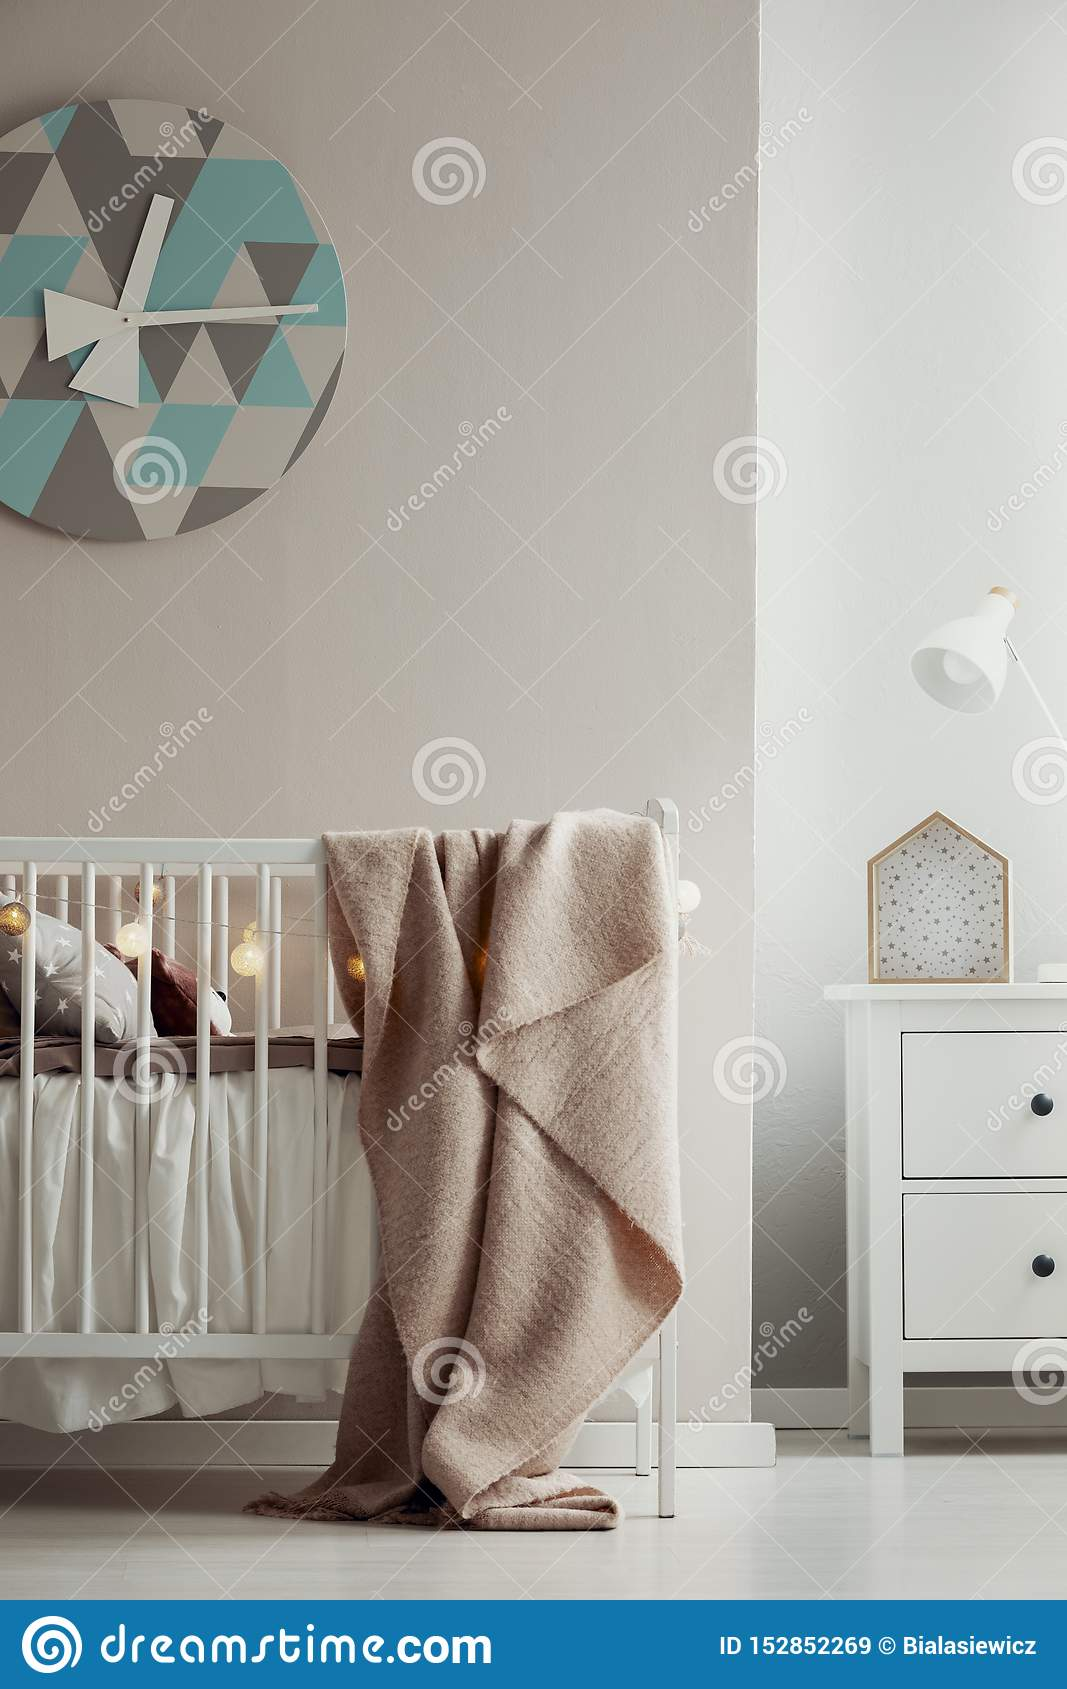 Fancy clack on the wall of elegant baby bedroom interior with white wooden crib with pastel pink blanket and cotton ball lights